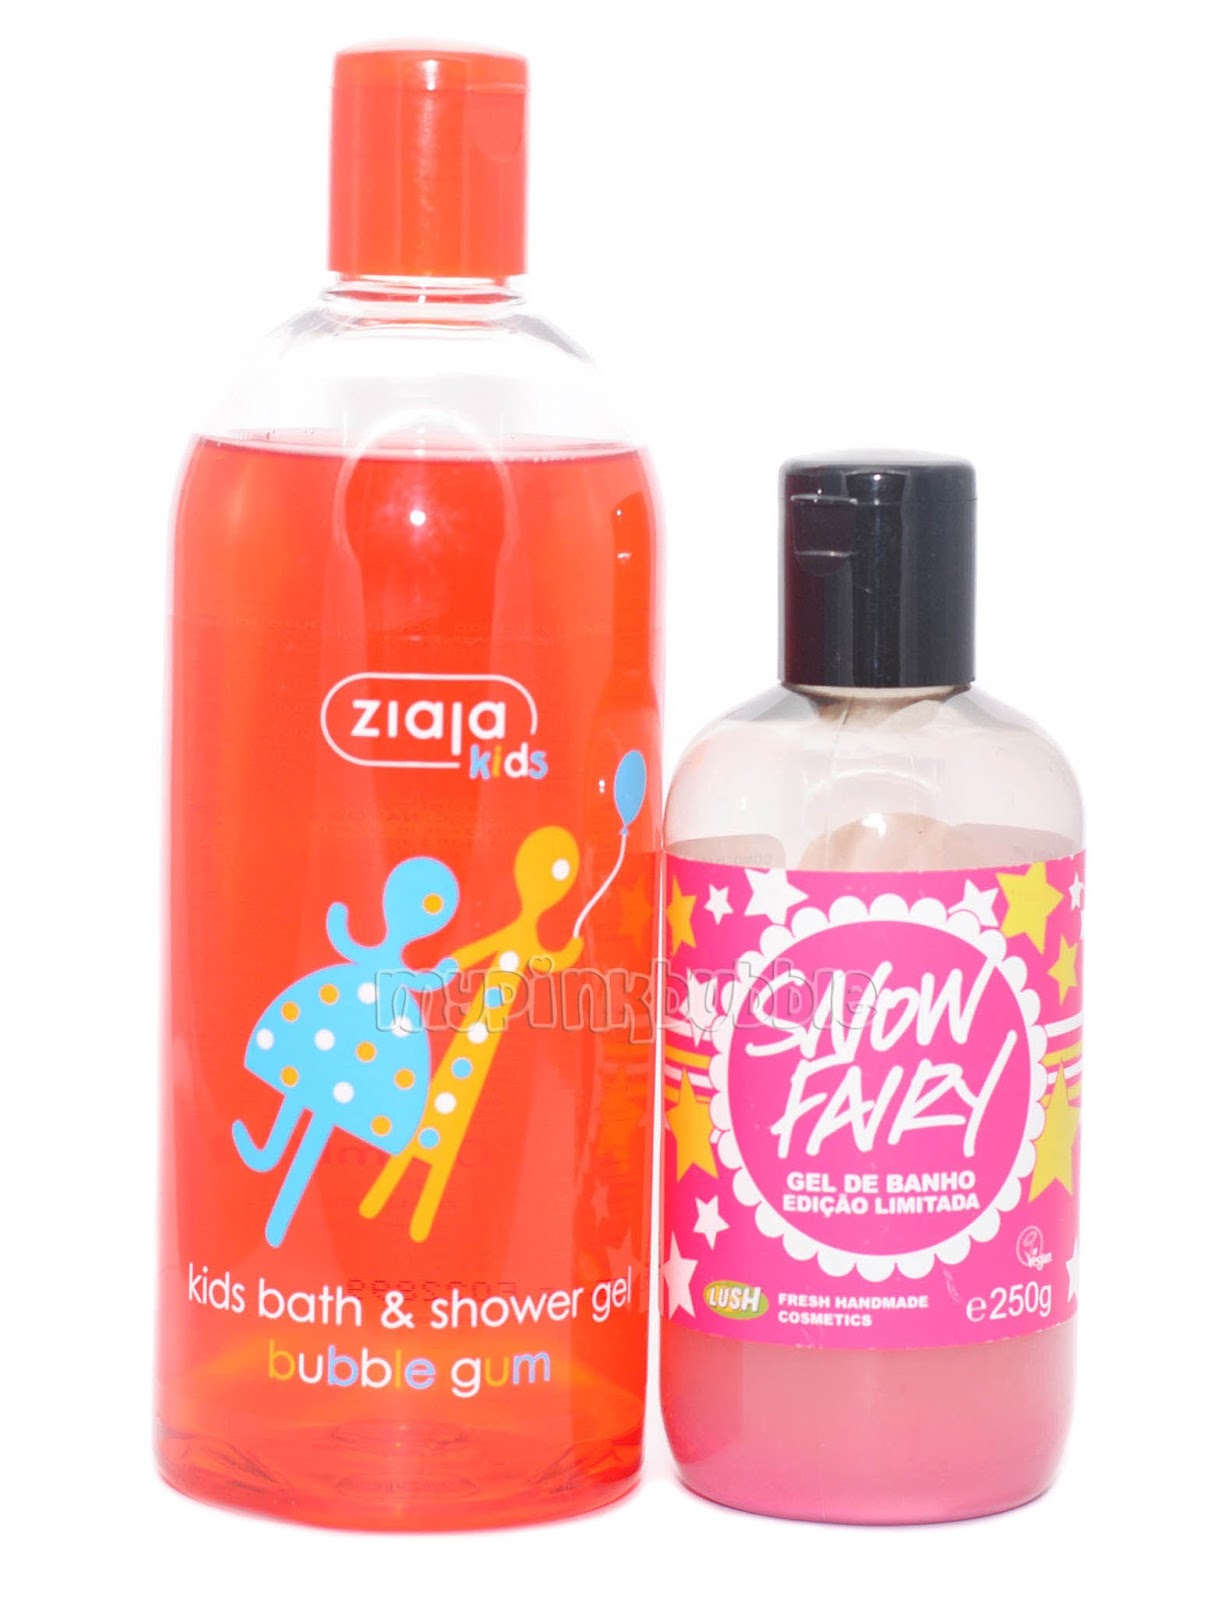 gel chicle Ziaja vs snow fairy lush